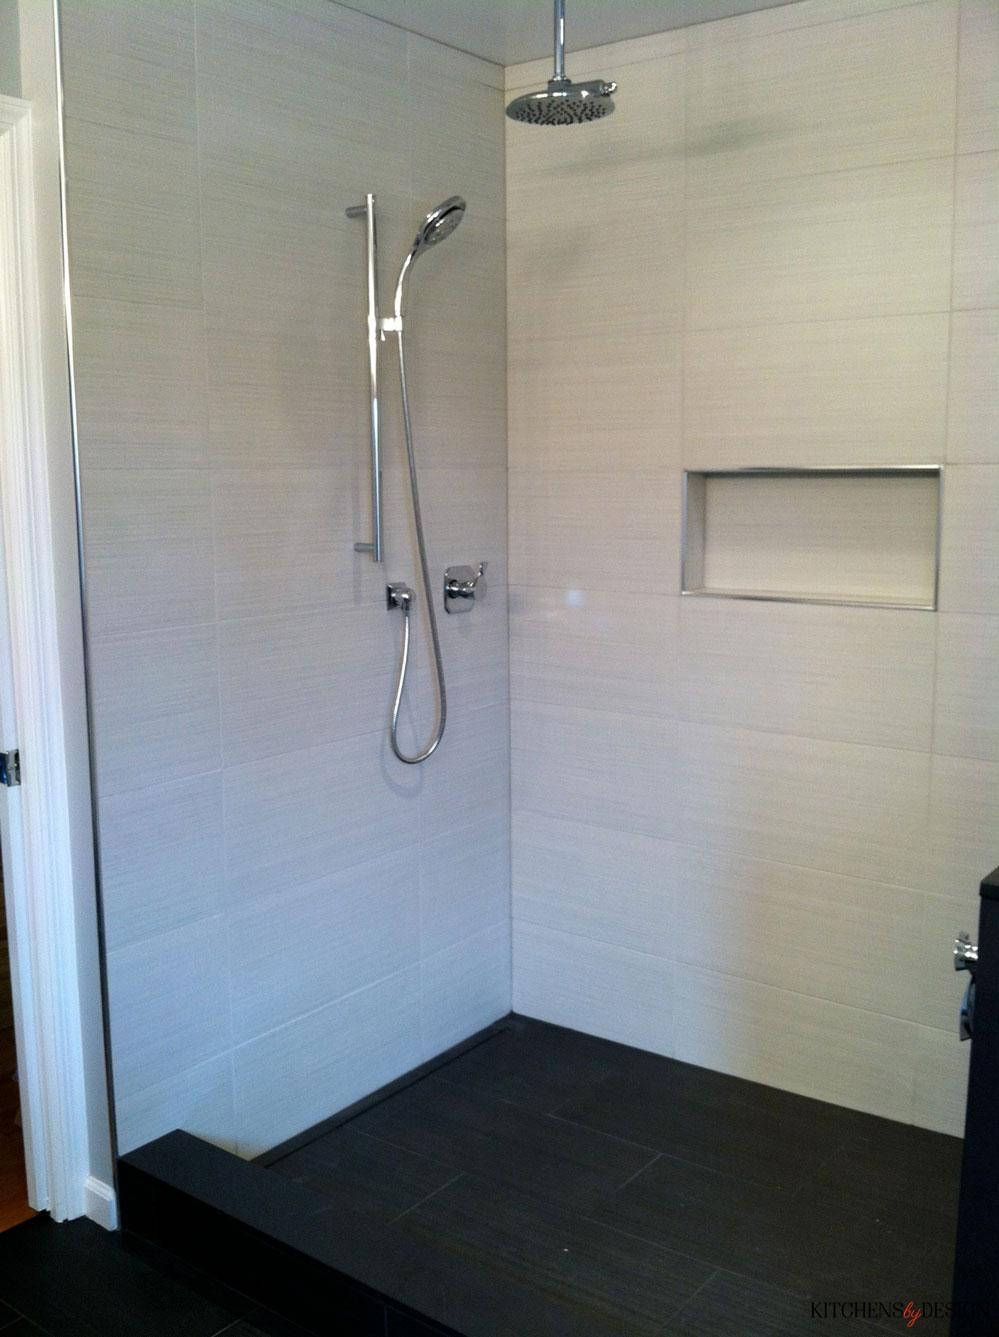 clean, white shower with dual shower heads